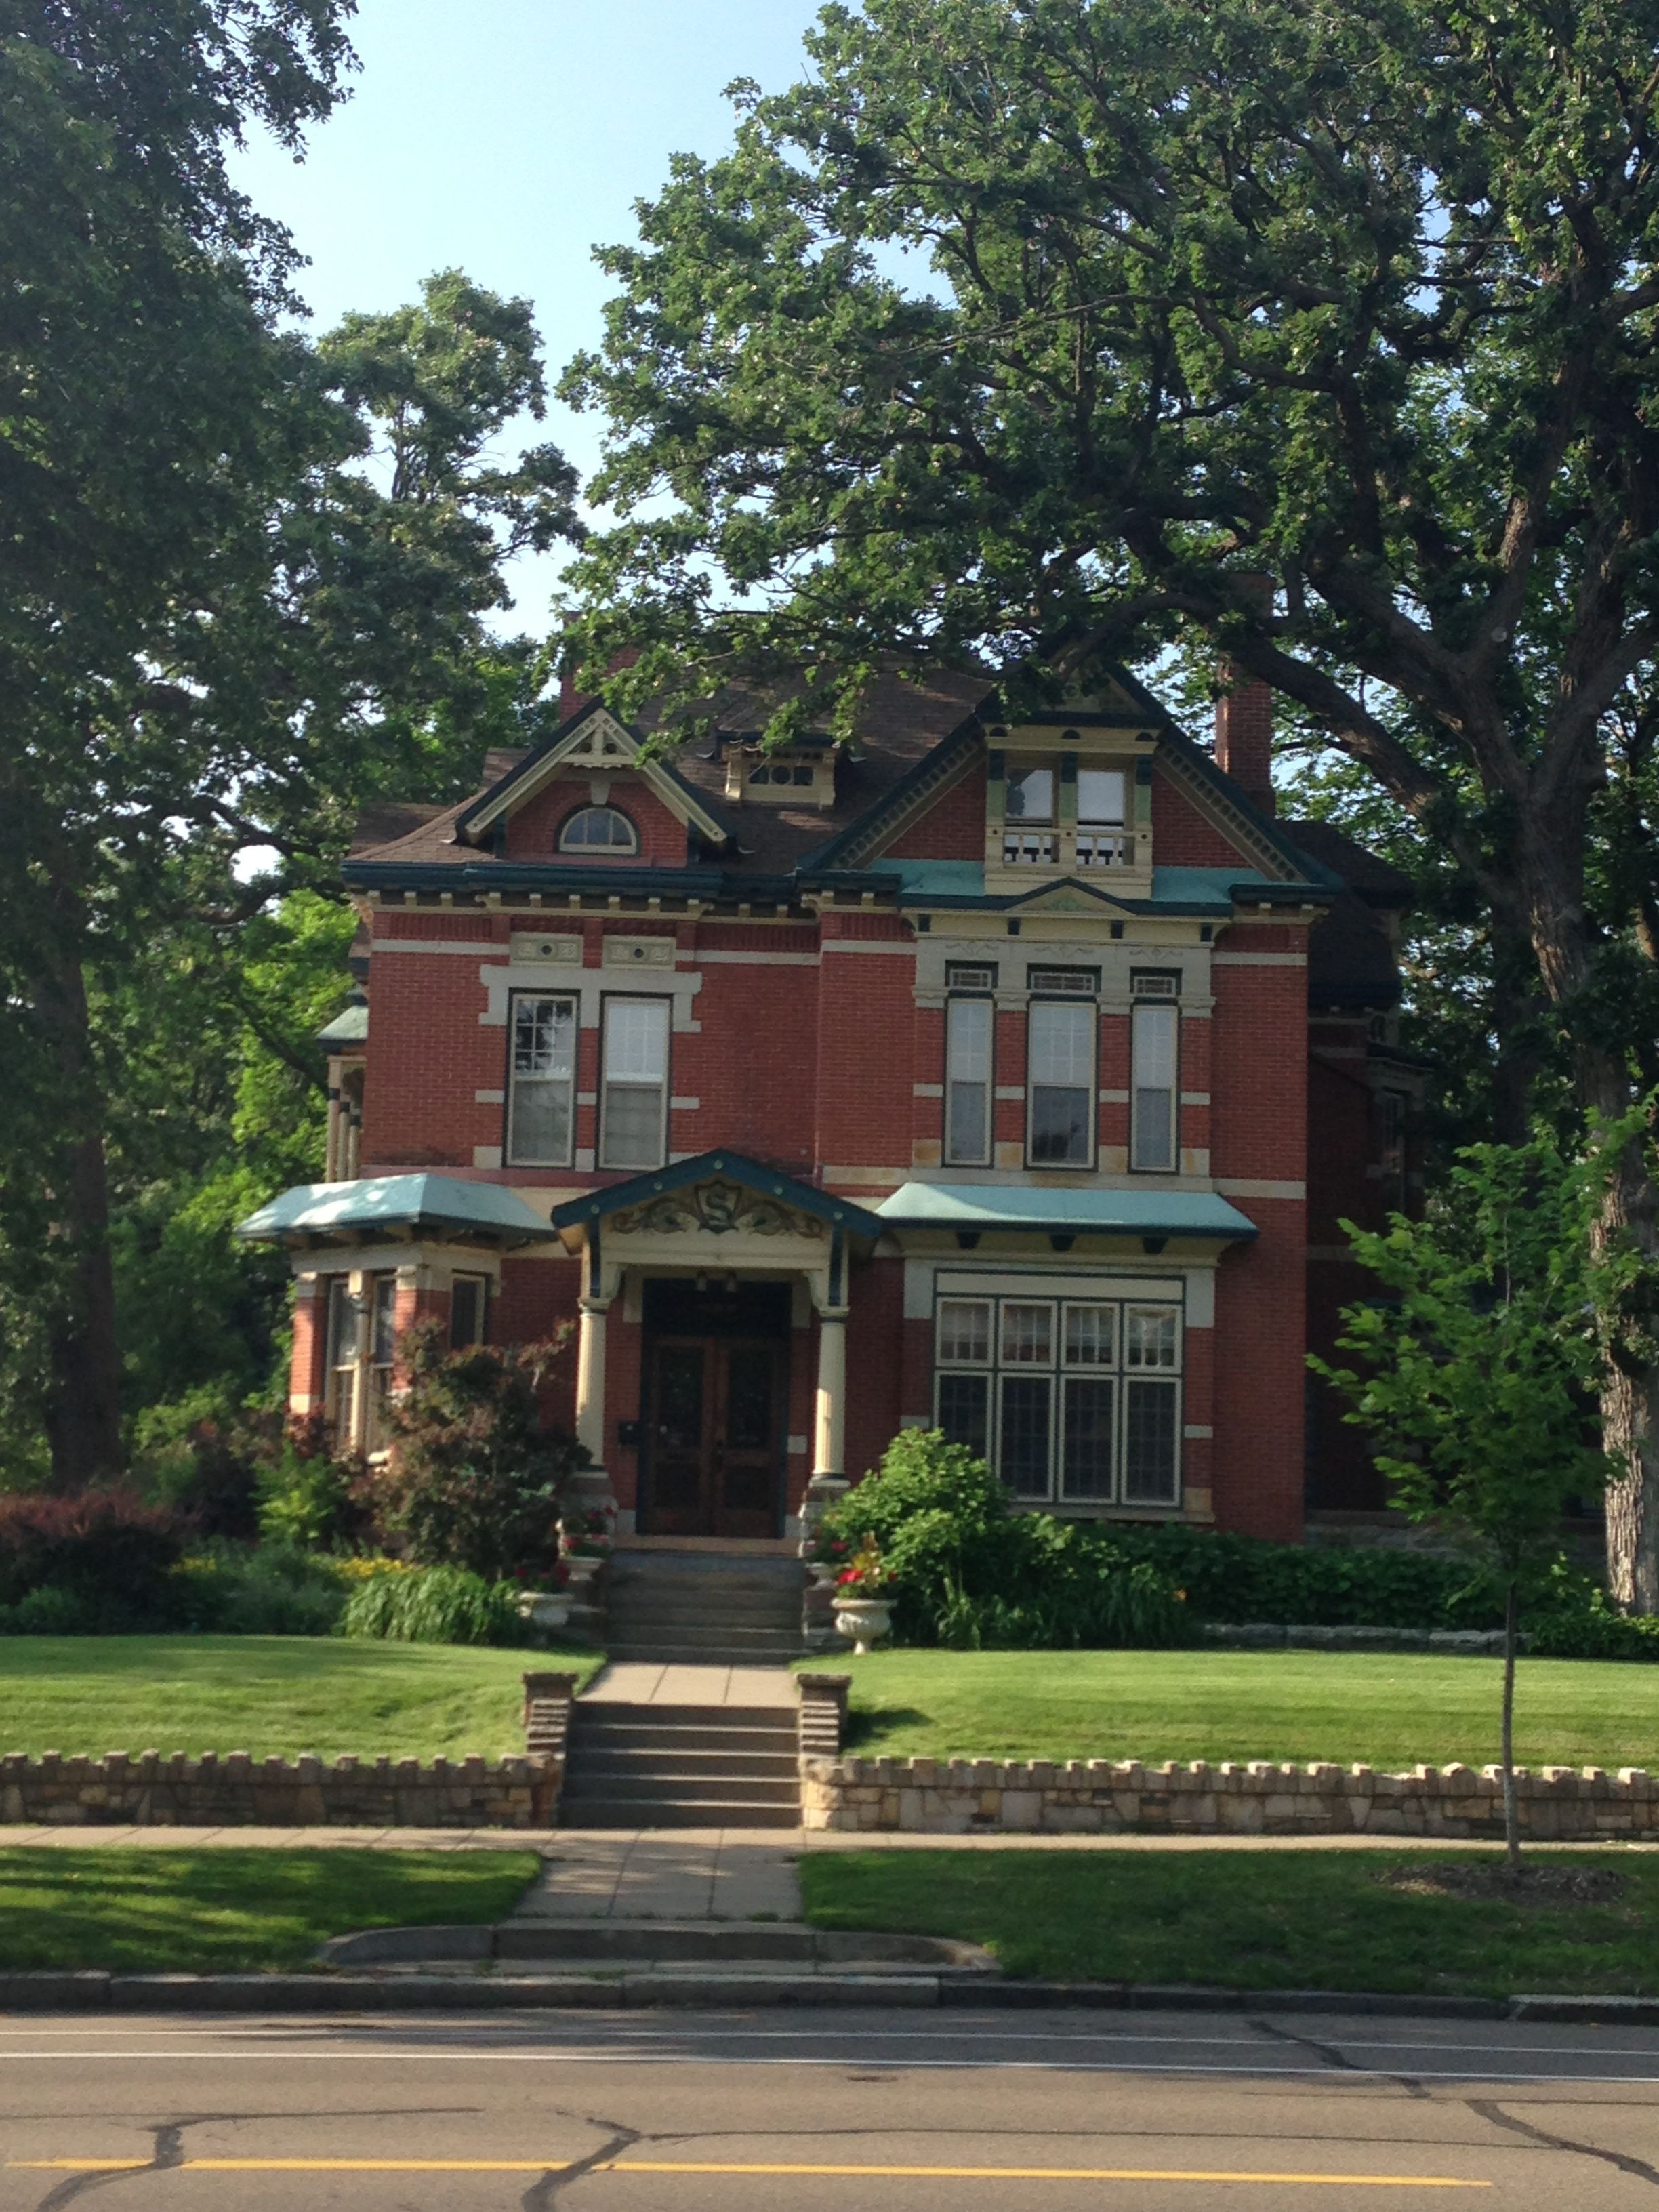 House On Summit Ave St Paul Mn Victorian Homes Victorian Architecture Historic Homes